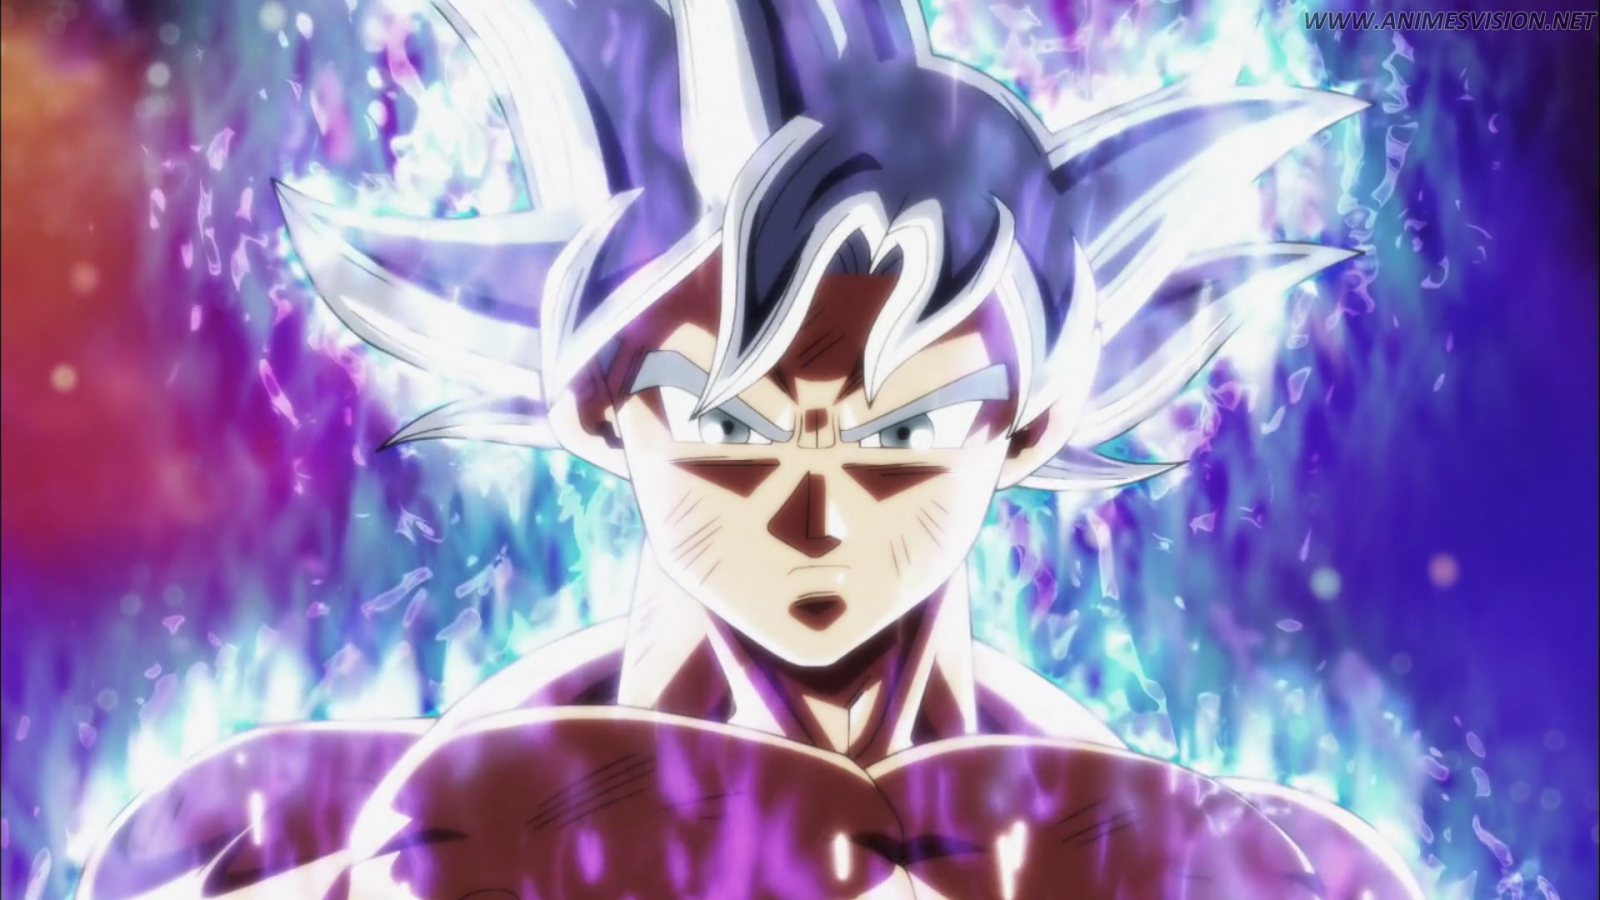 Mastered Ultra Instinct Goku Wallpapers Top Free Mastered Ultra Instinct Goku Backgrounds Wallpaperaccess